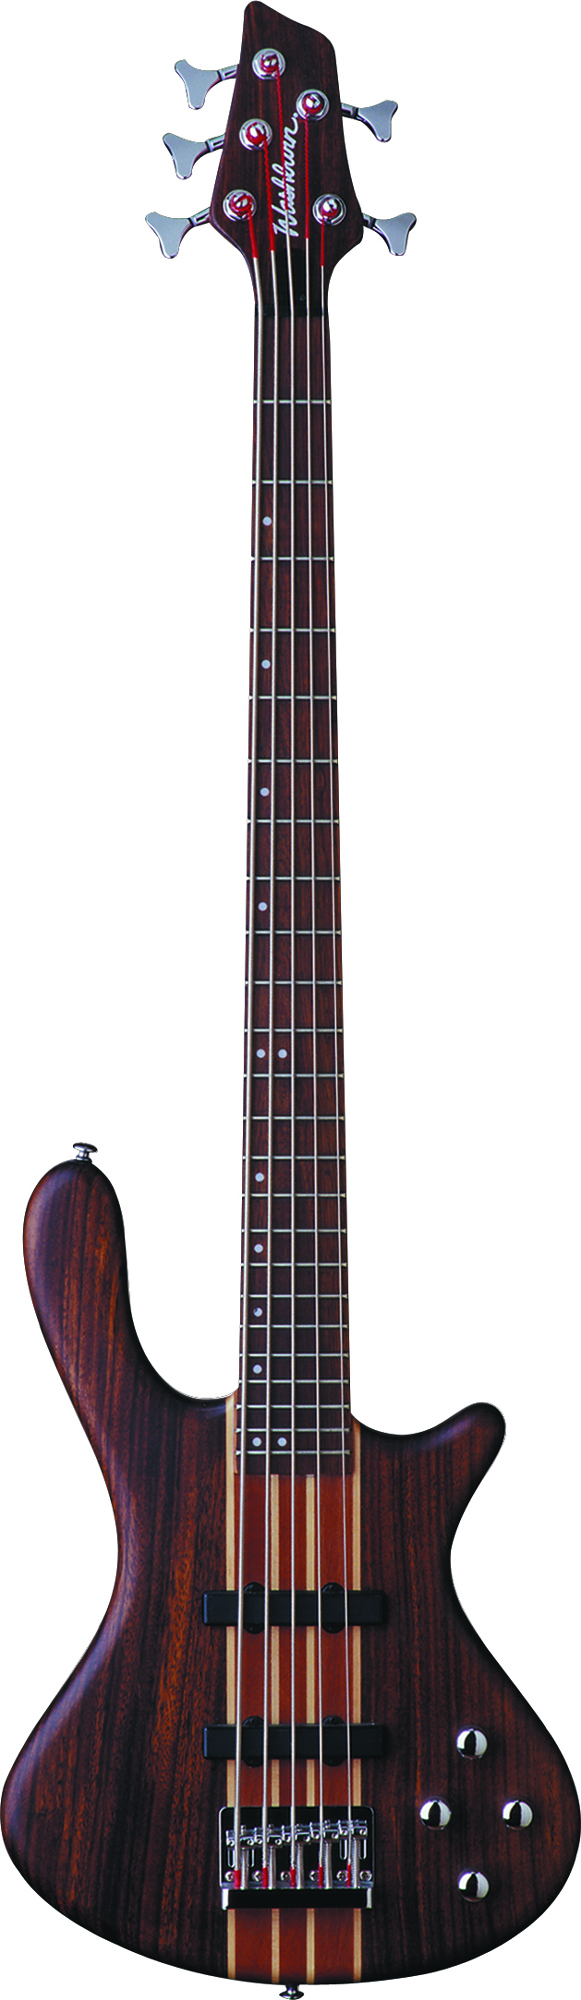 washburn t25nmk 5 string taurus electric bass guitar with natural matte finish was12 t25nmk. Black Bedroom Furniture Sets. Home Design Ideas